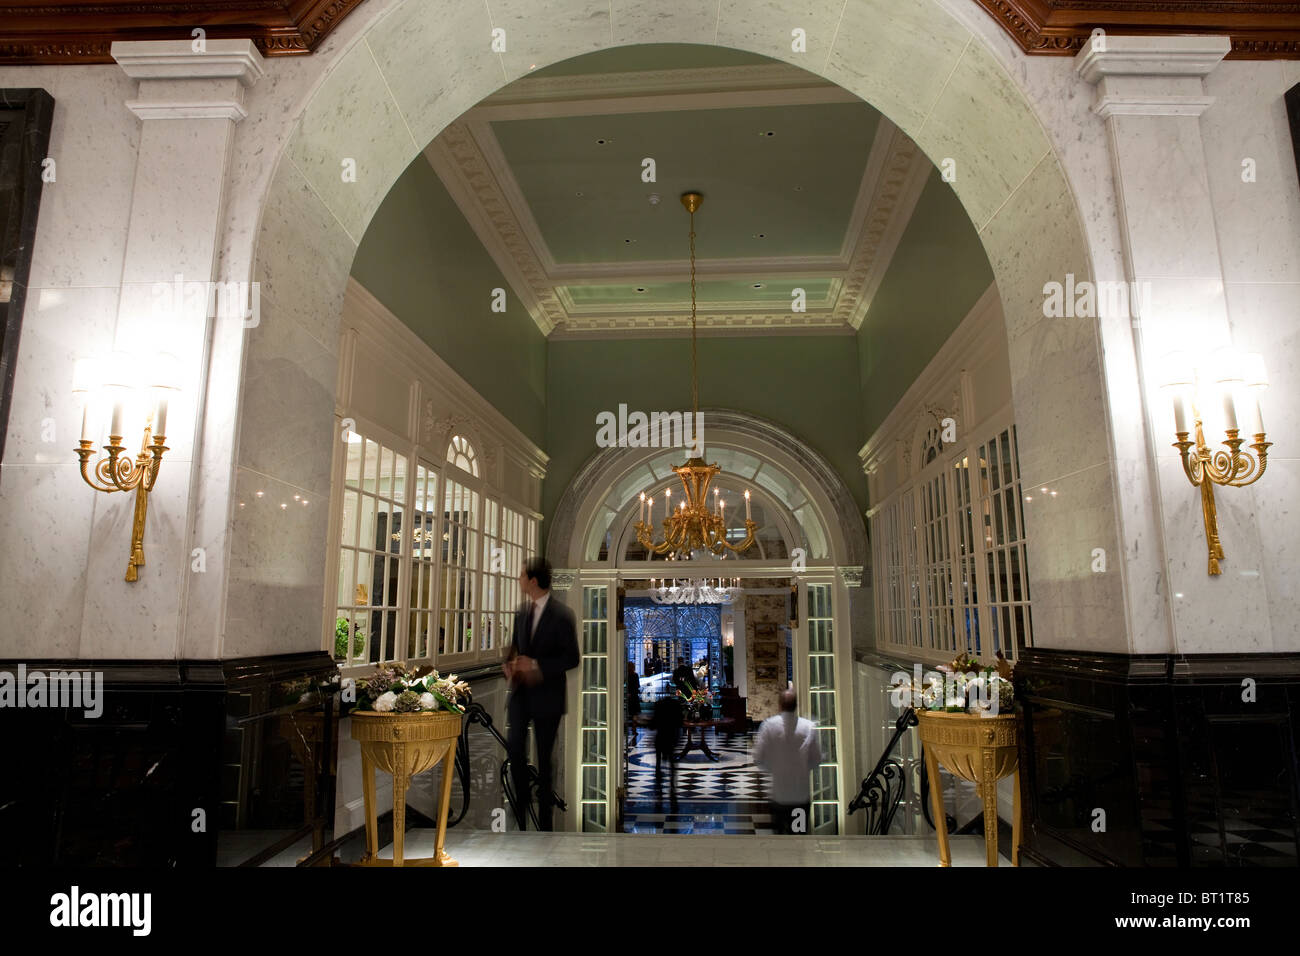 Savoy Hotel in London. Reopened in October 2010 after a complete refurbishment. Photos show the new entrance lobby - Stock Image